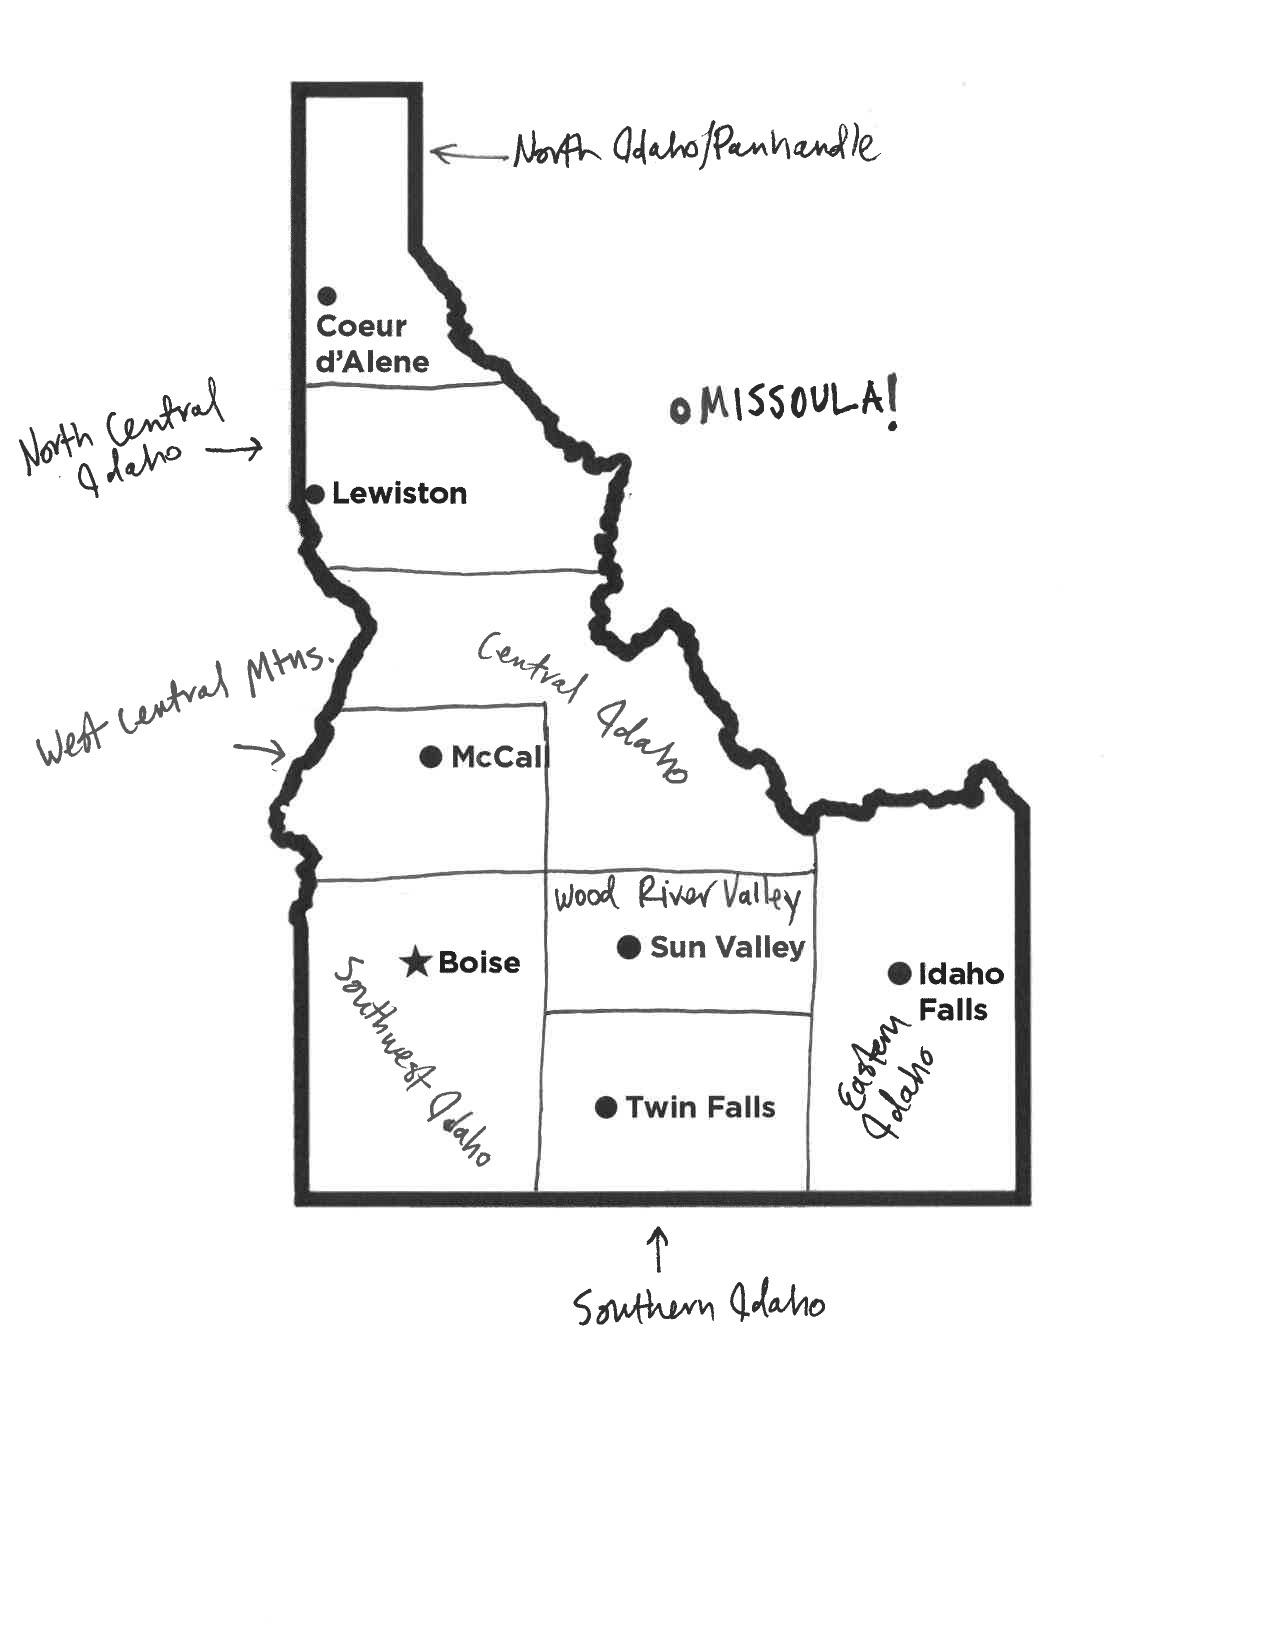 Here We Have Idaho: How Would You Draw A Map Of Our State ... Idaho State Physical Map on wa state physical map, idaho political map, colorado state physical map, high resolution wyoming map, memphis physical map, kansas state physical map, oregon state physical map, russia and central asia physical map, idaho grizzly bear range map, idaho volcanoes map, idaho state's, ohio river physical map, louisiana state political map, virginia state physical map, houston physical map, mississippi physical map, detailed idaho road map, chicago state physical map, democratic republic of congo physical map, ohio state physical map,